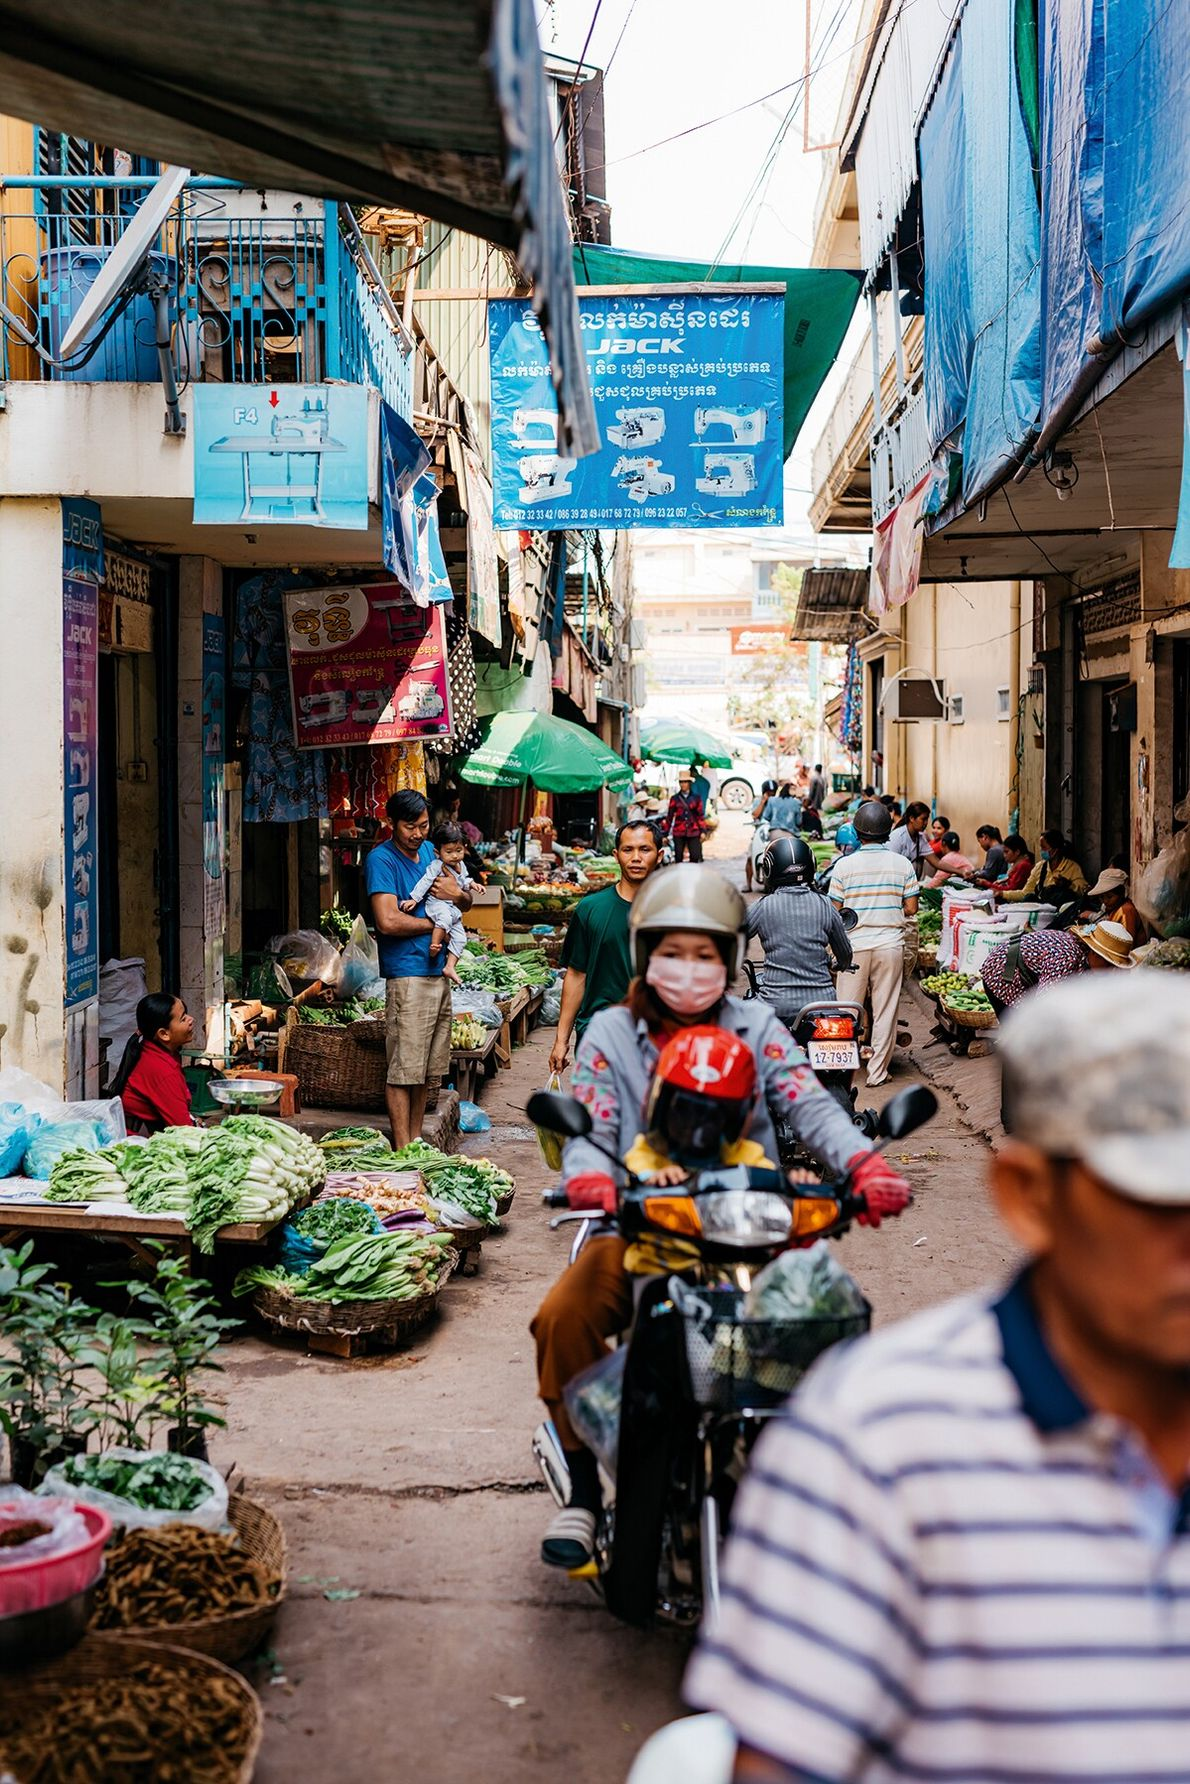 From the early morning onwards, Siem Reap's Central Market thrums with activity: a clash of vibrant ...